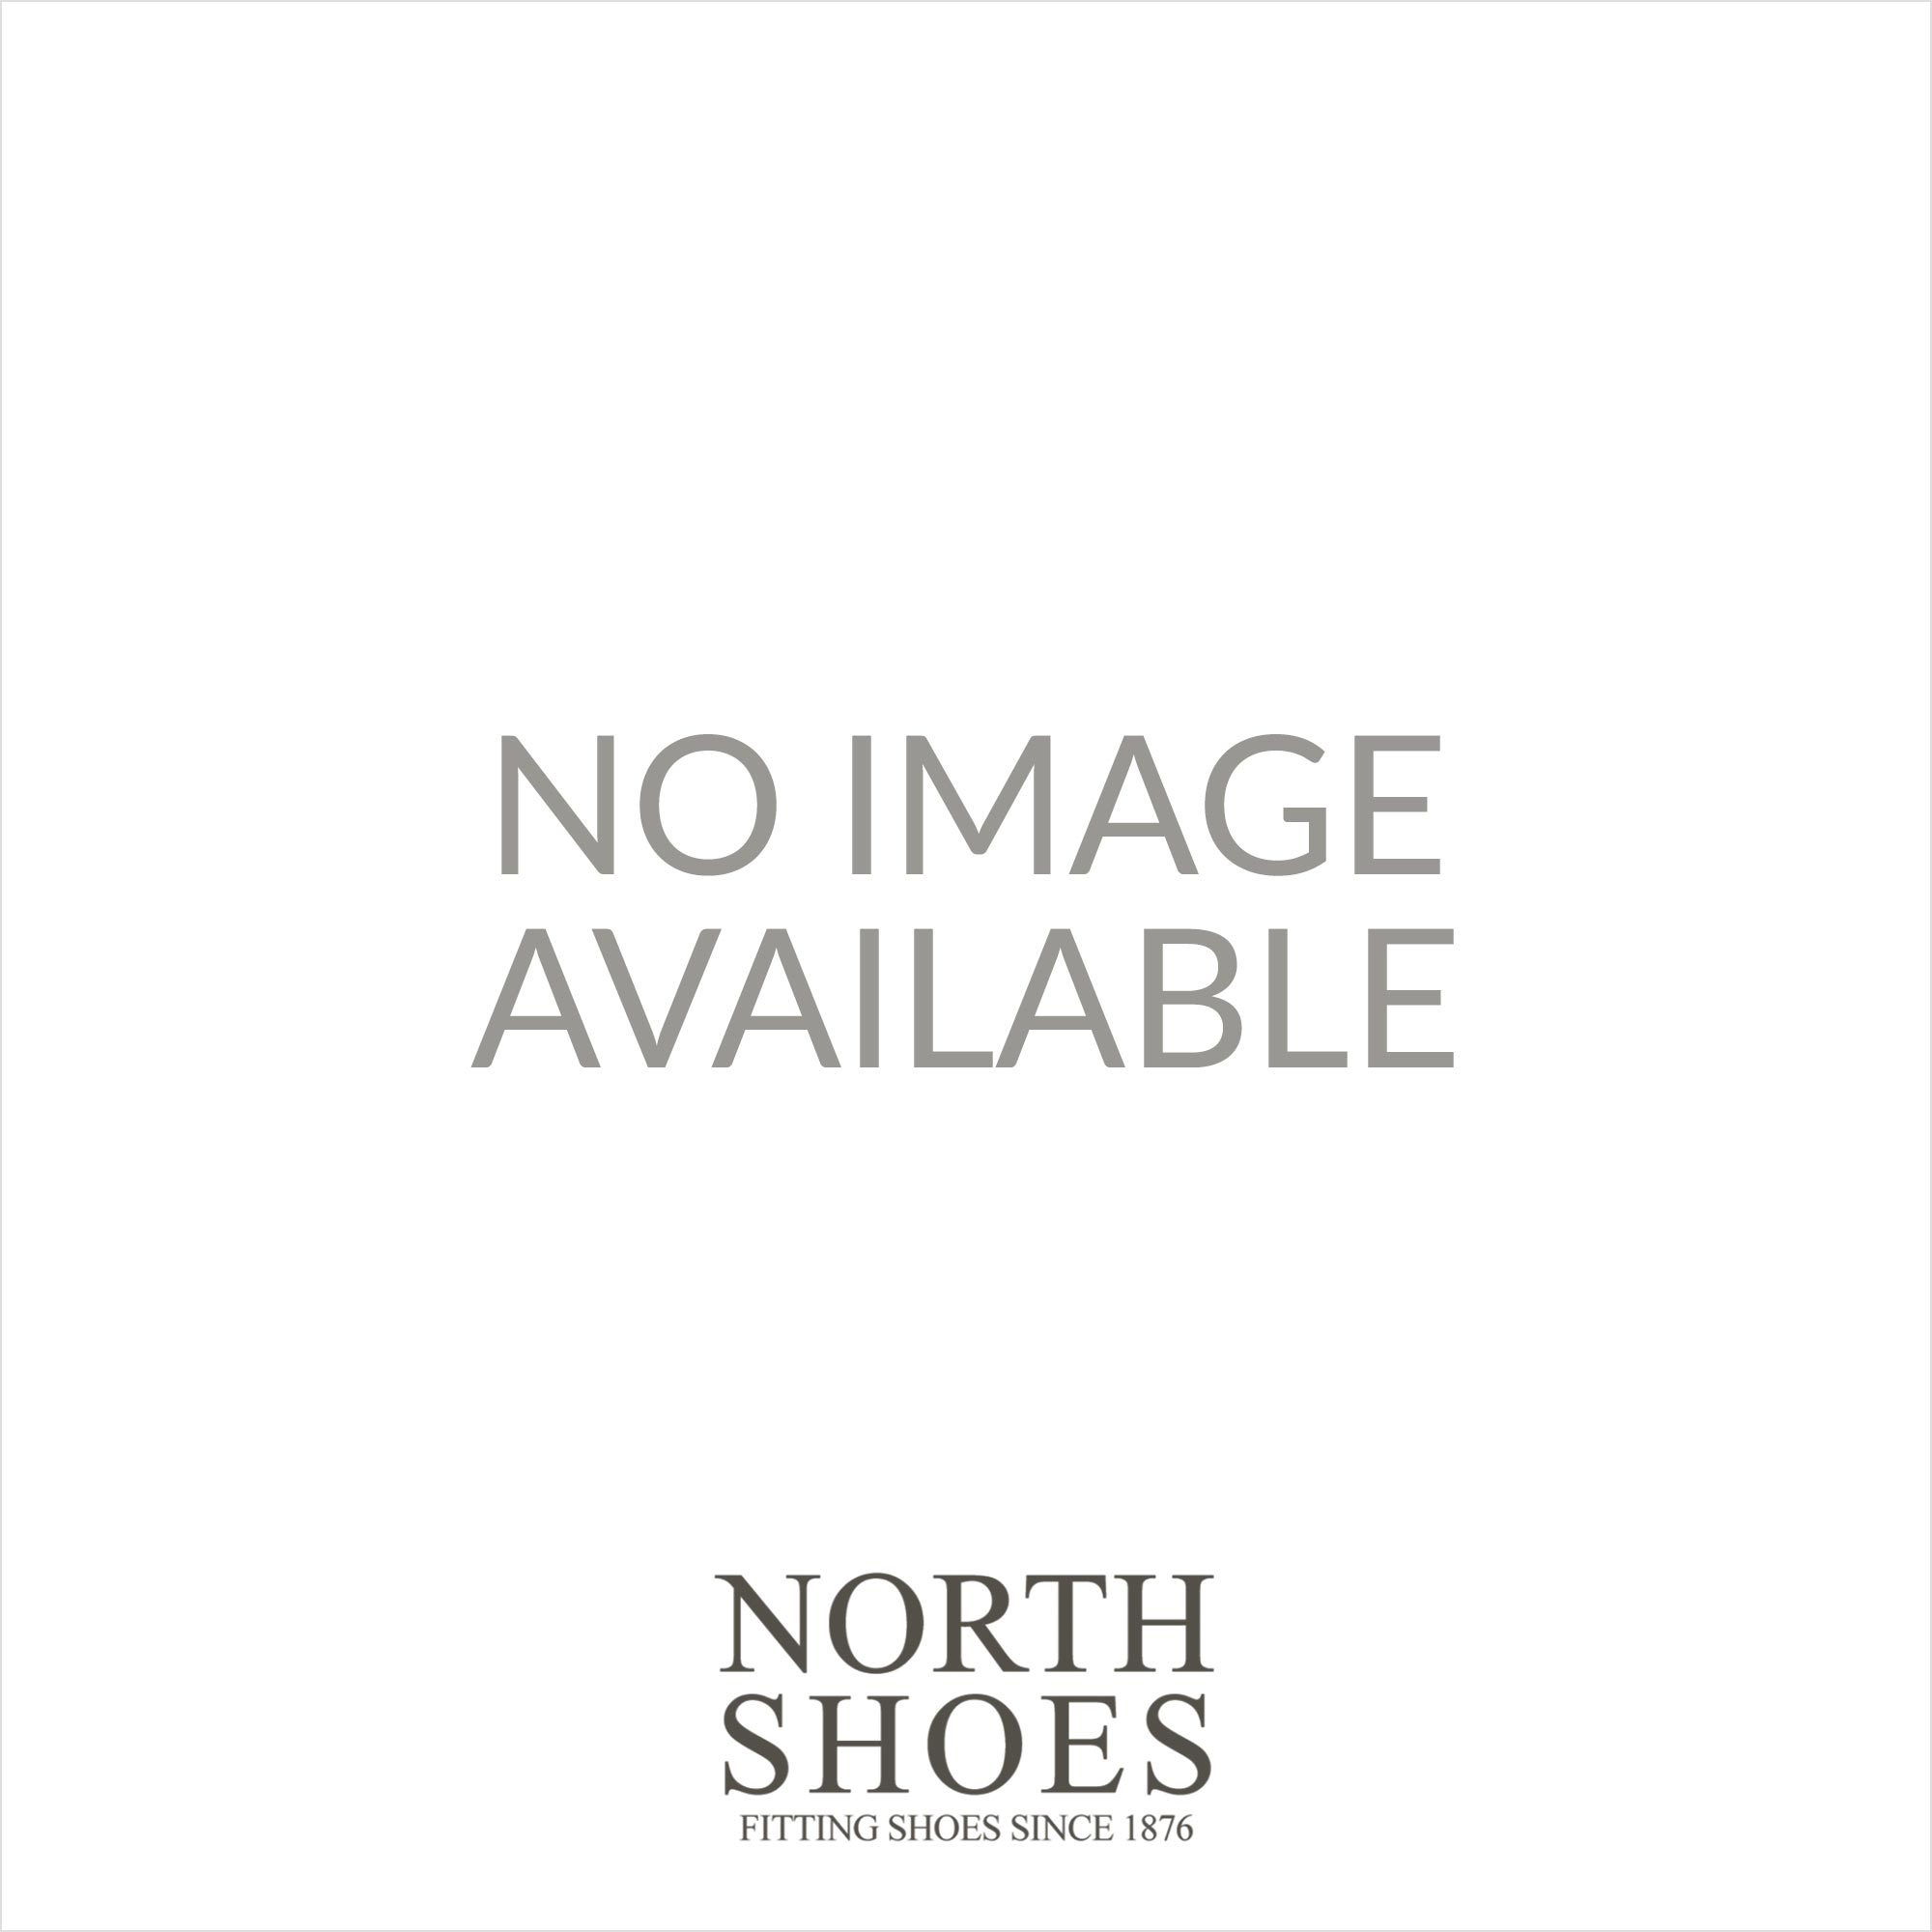 99b9b8b4ff0 Clarks Piper Chat Infant Silver Leather Girls Light Up Trainer - Clarks  from North Shoes UK